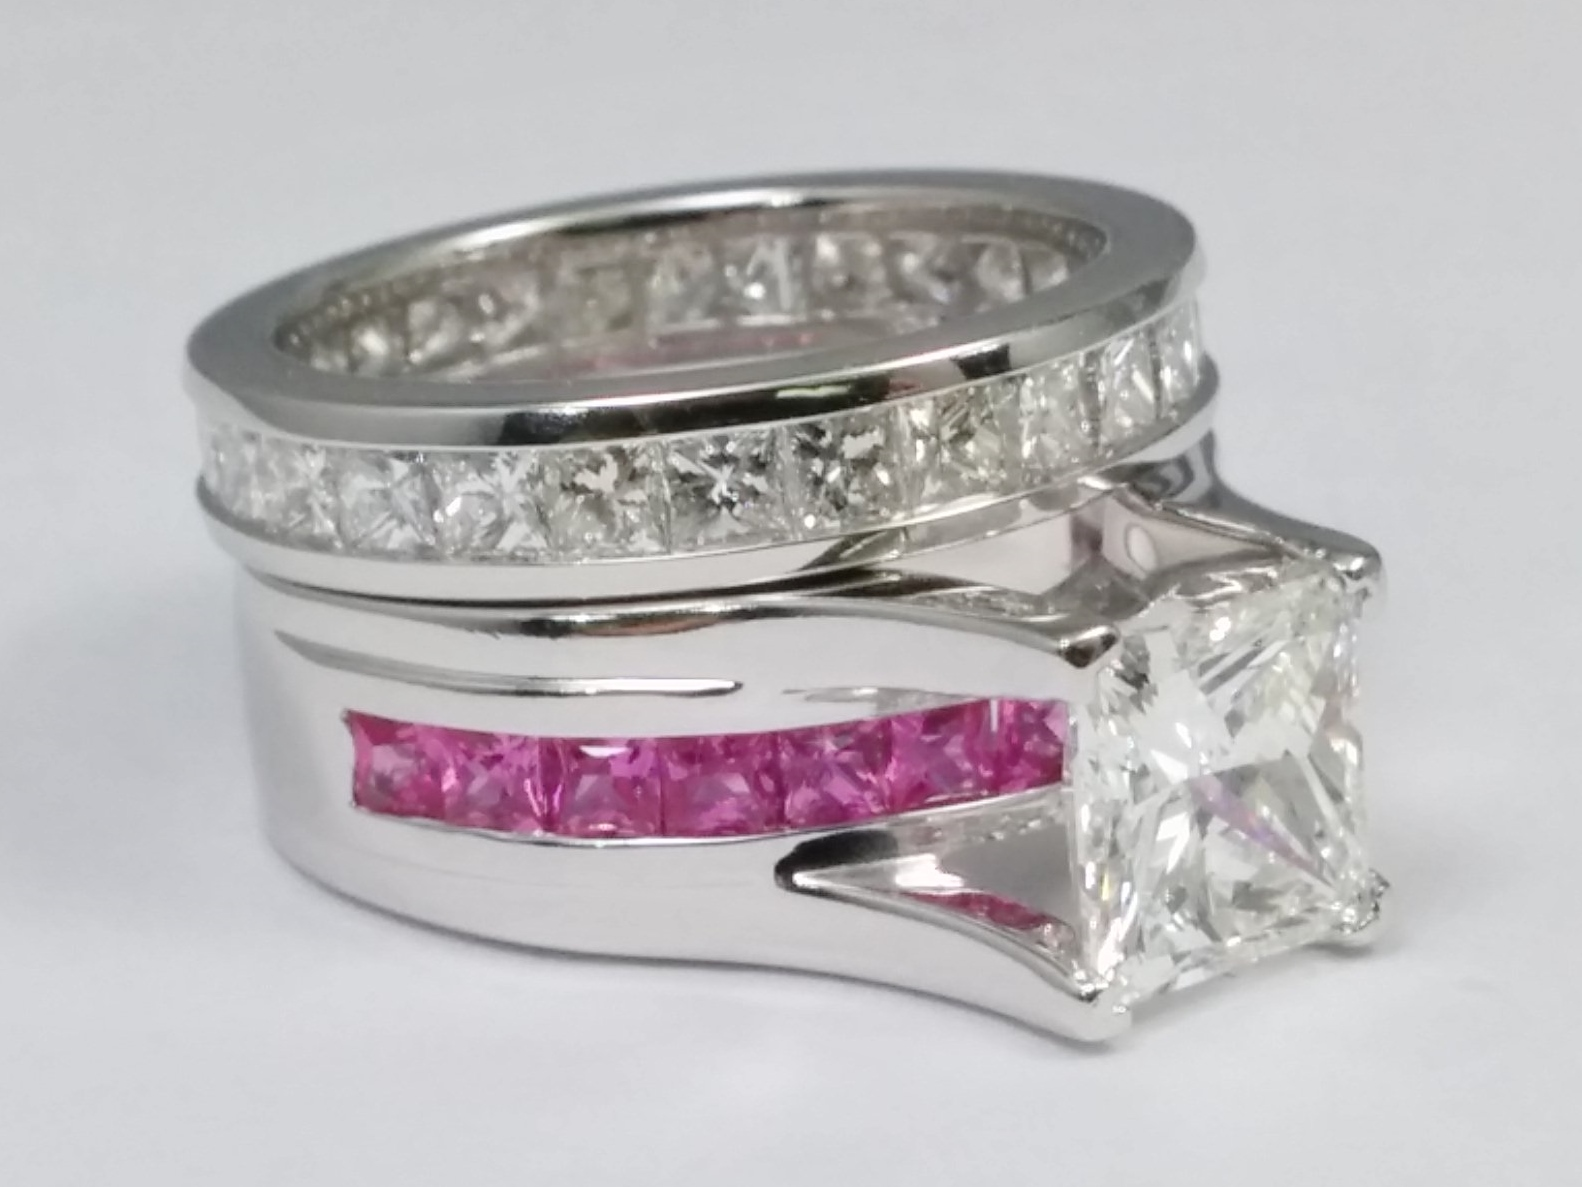 Princess Cut Diamond Bridge Engagement Ring Setting With Pink Shire And Eternity Band In 14k